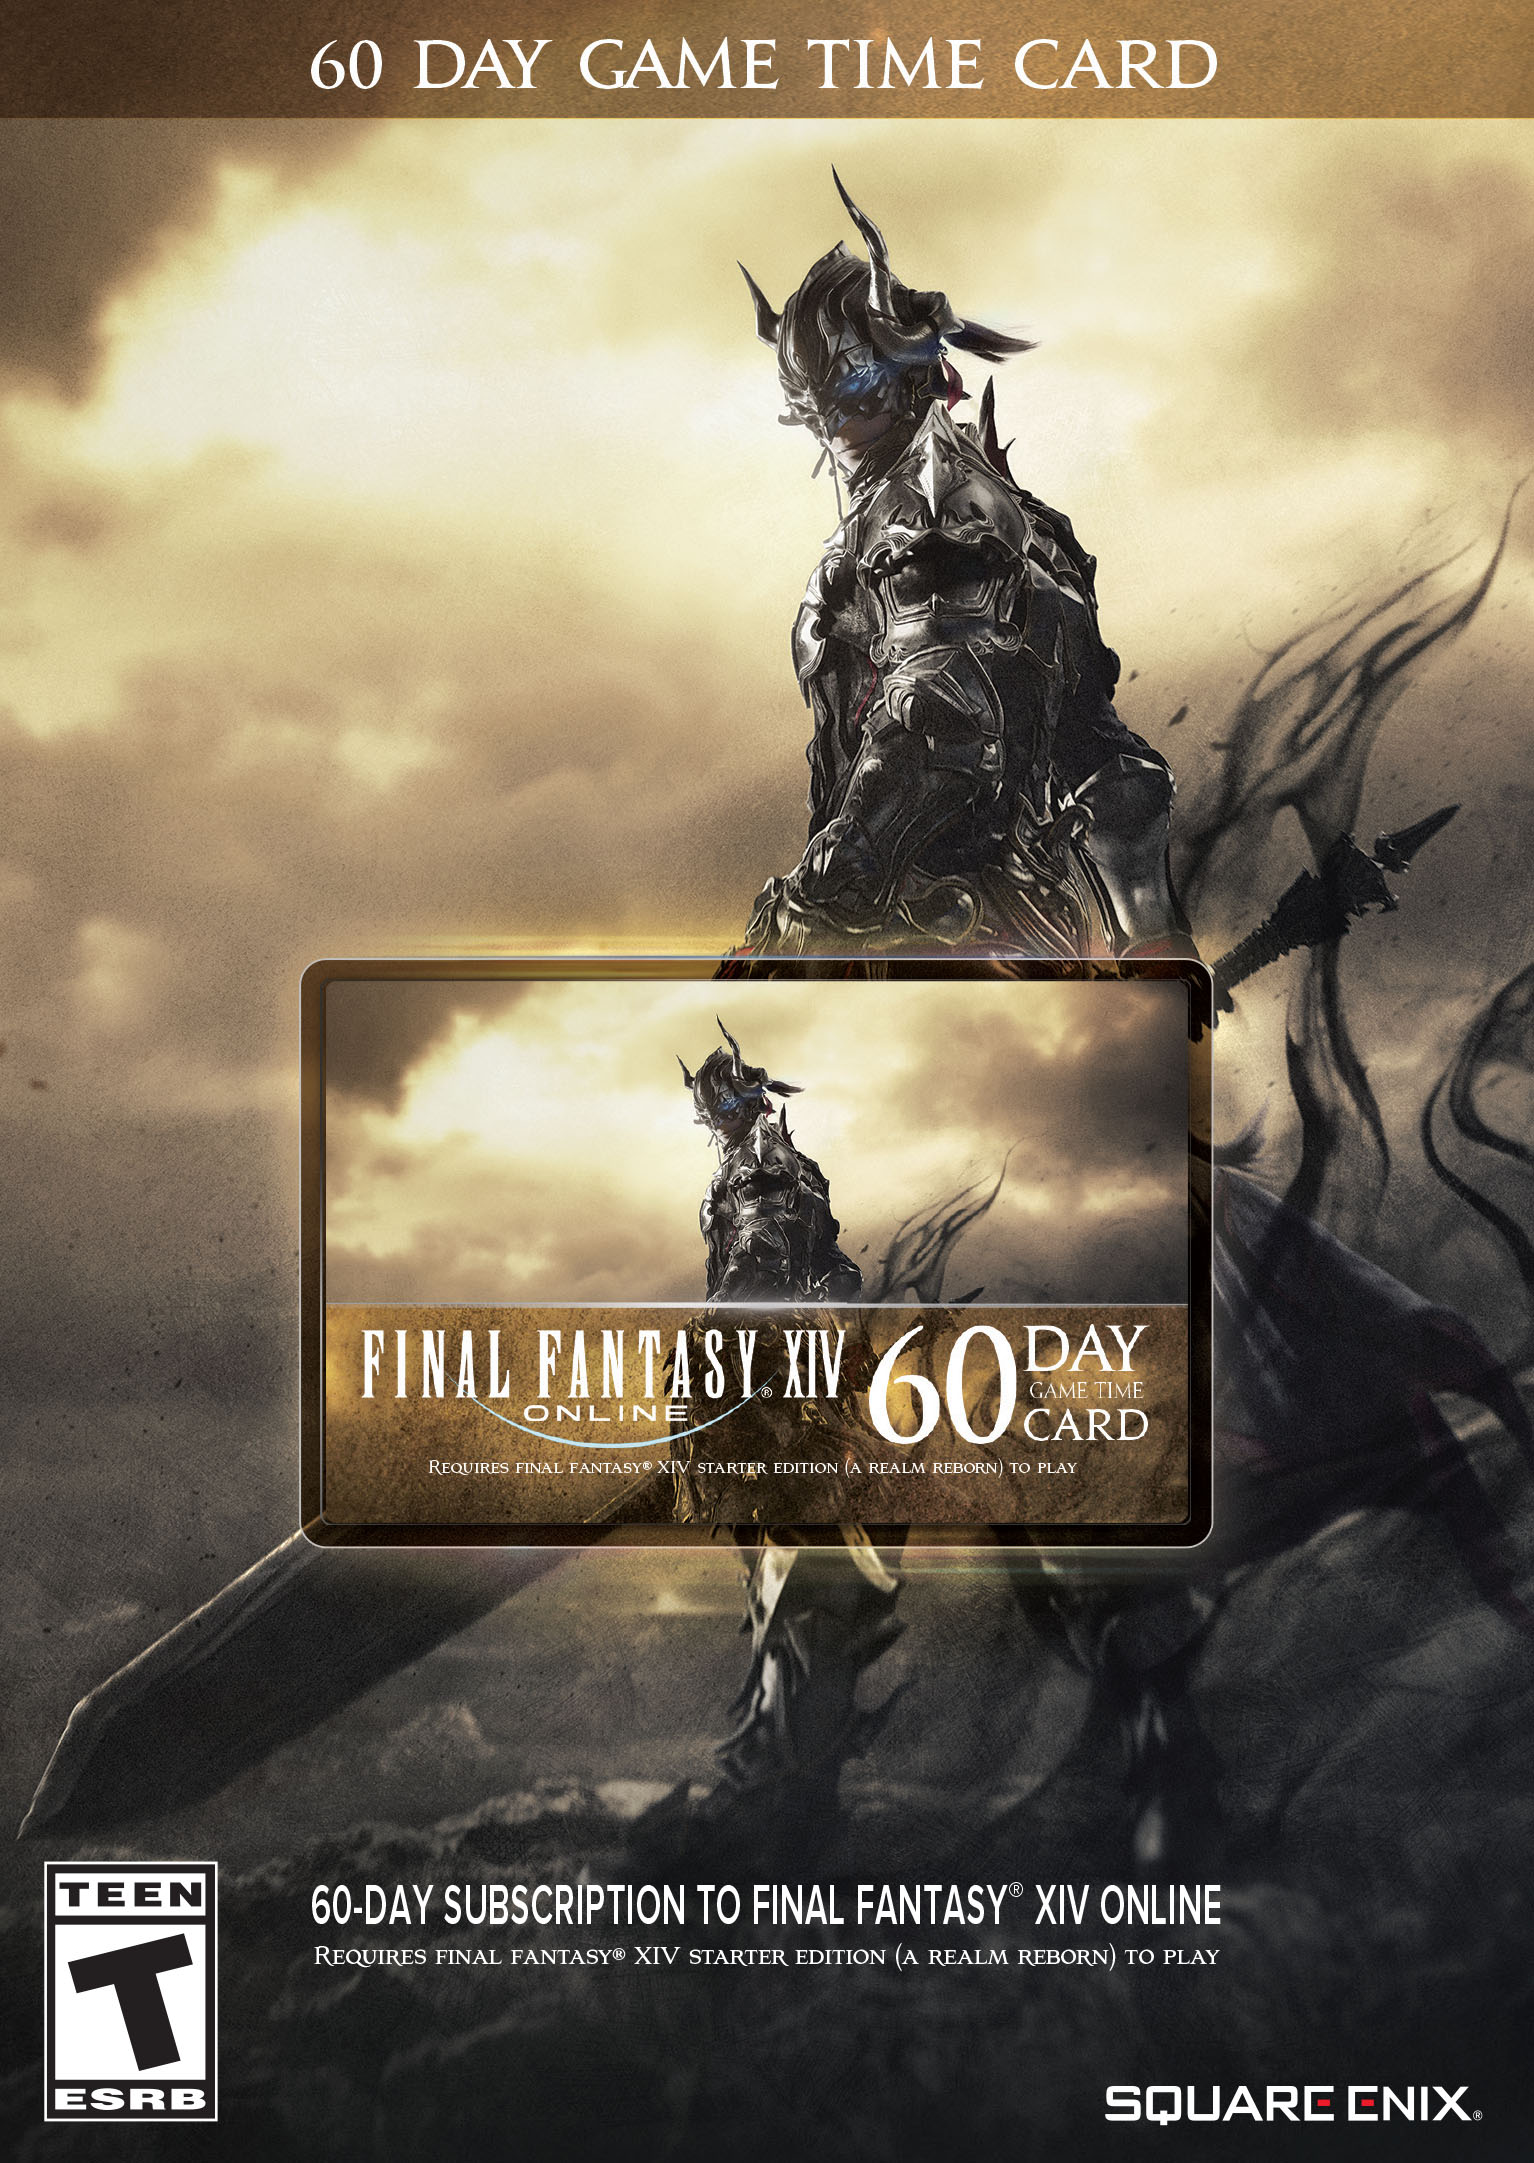 FINAL FANTASY® XIV ONLINE 60 DAY GAME TIME CODE [DOWNLOAD] | Square